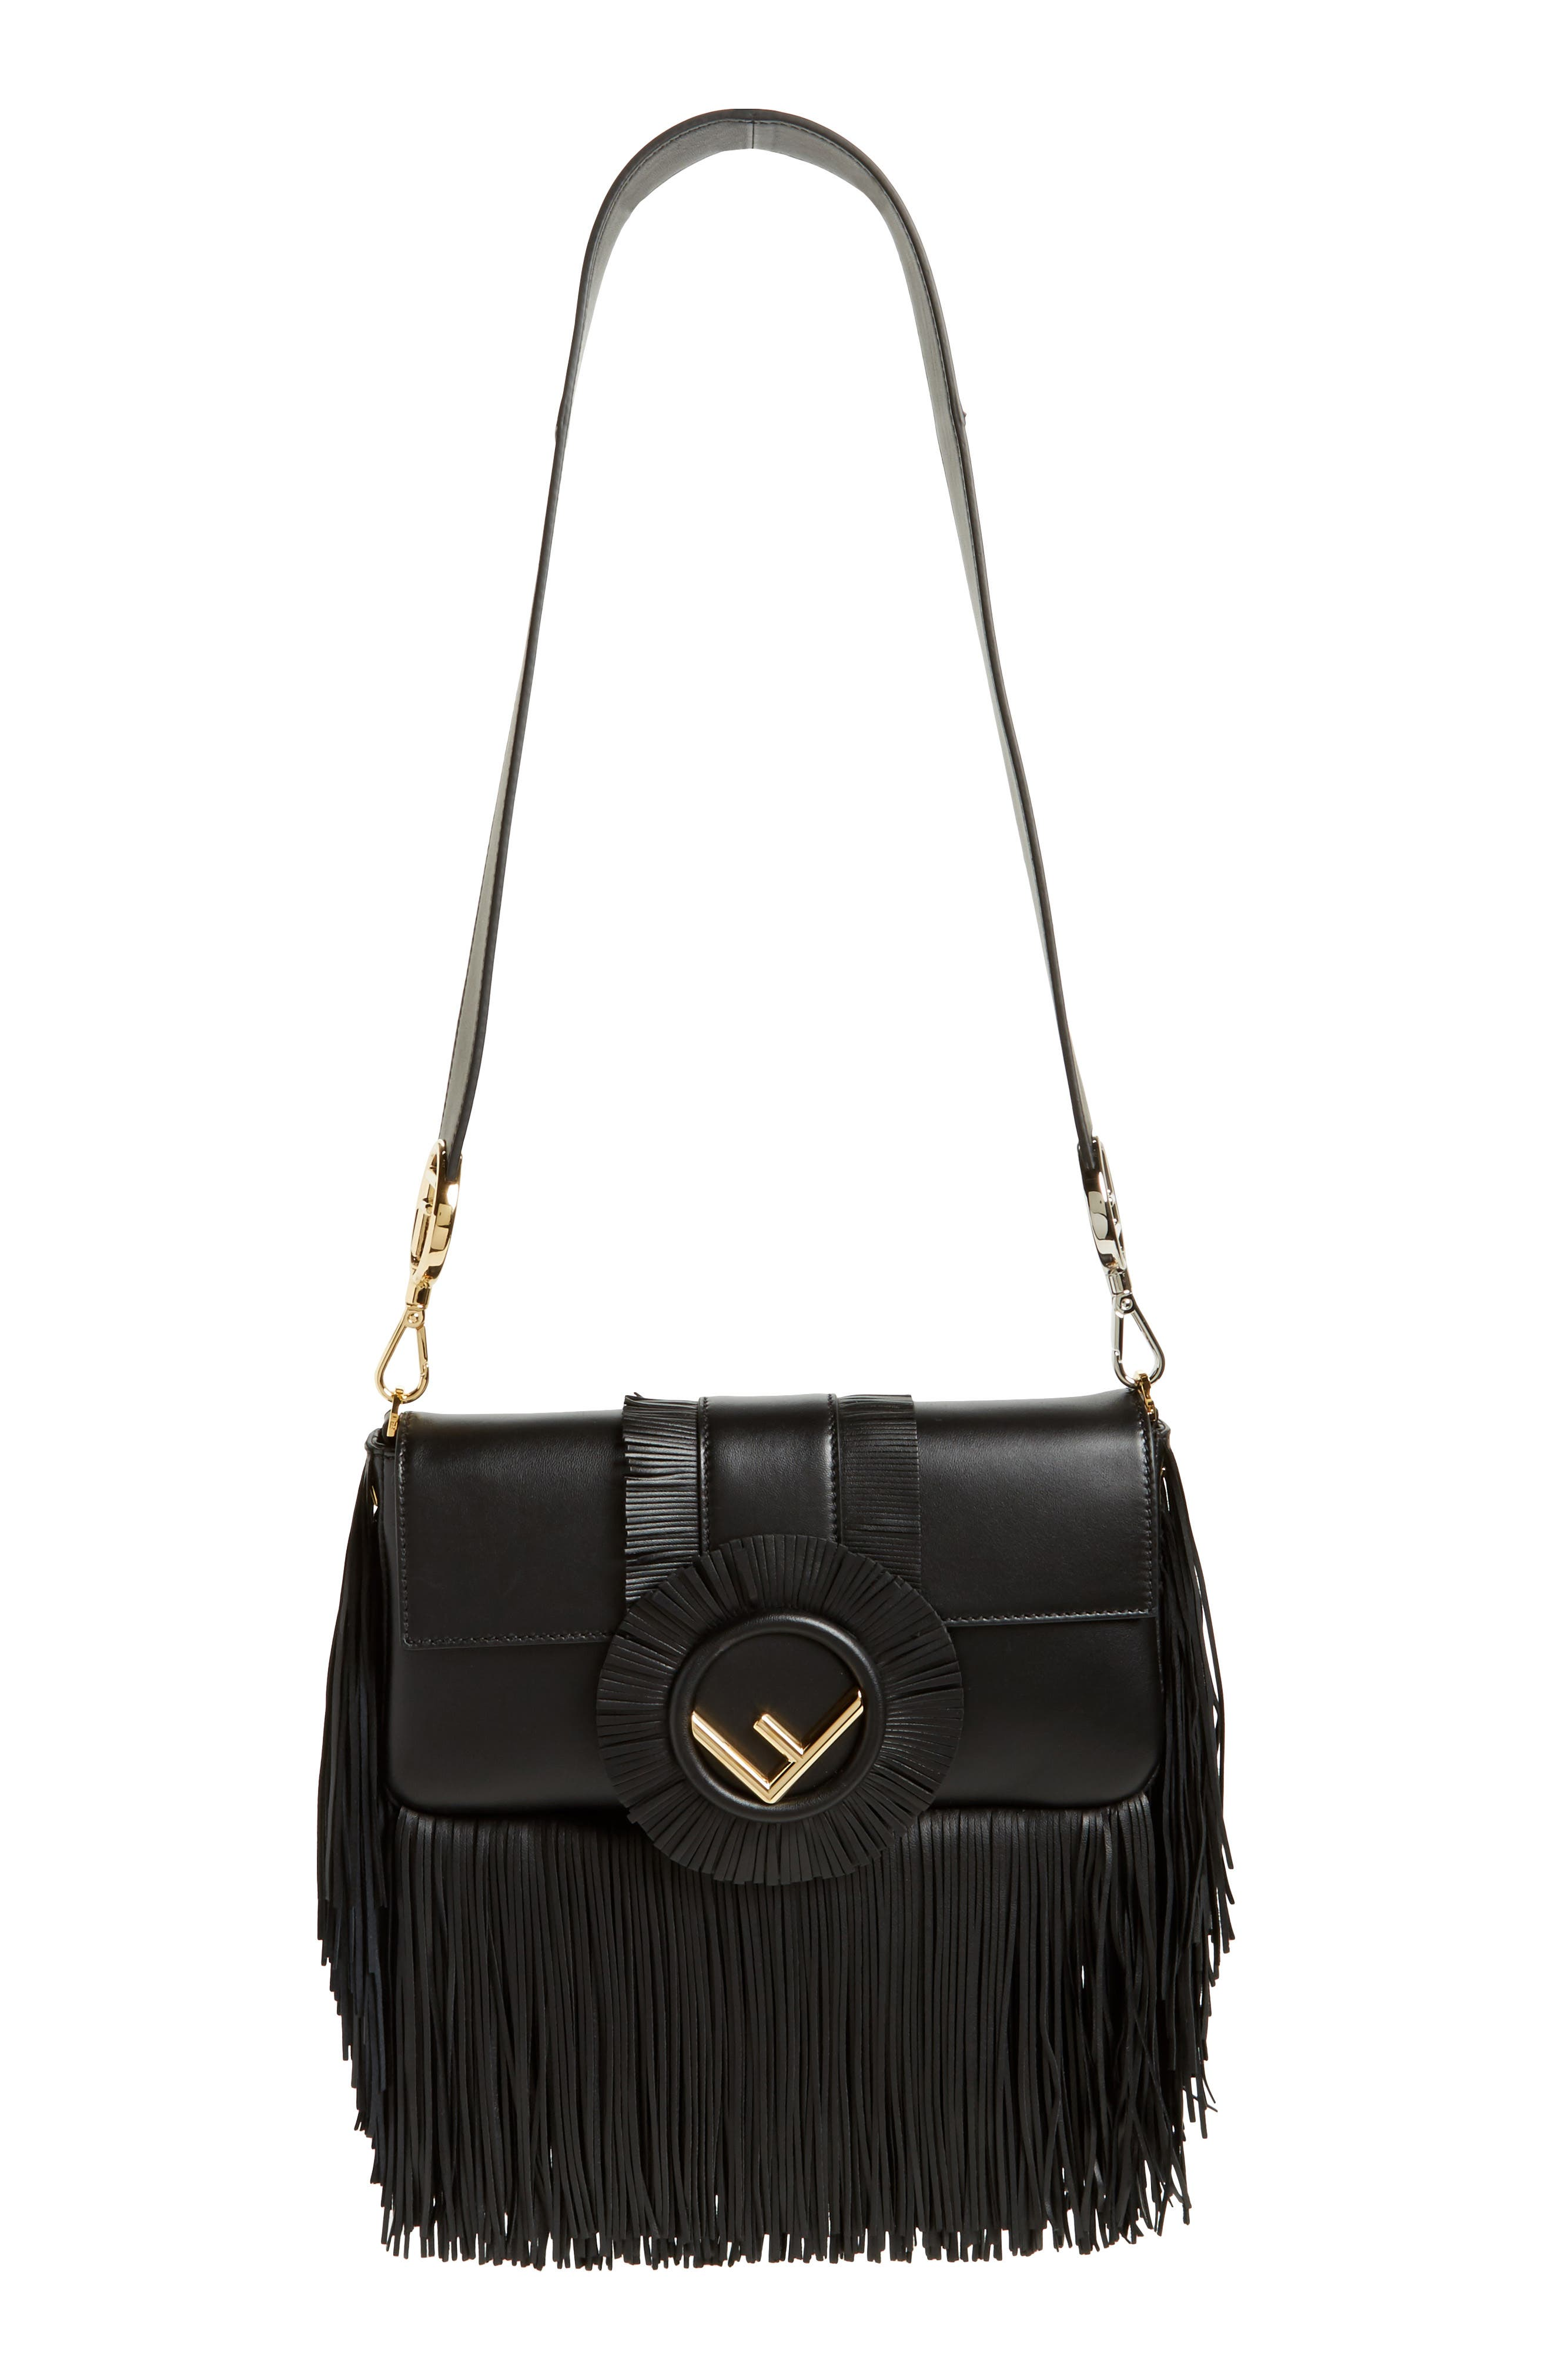 Fendi Fringed Lambskin Leather Baguette